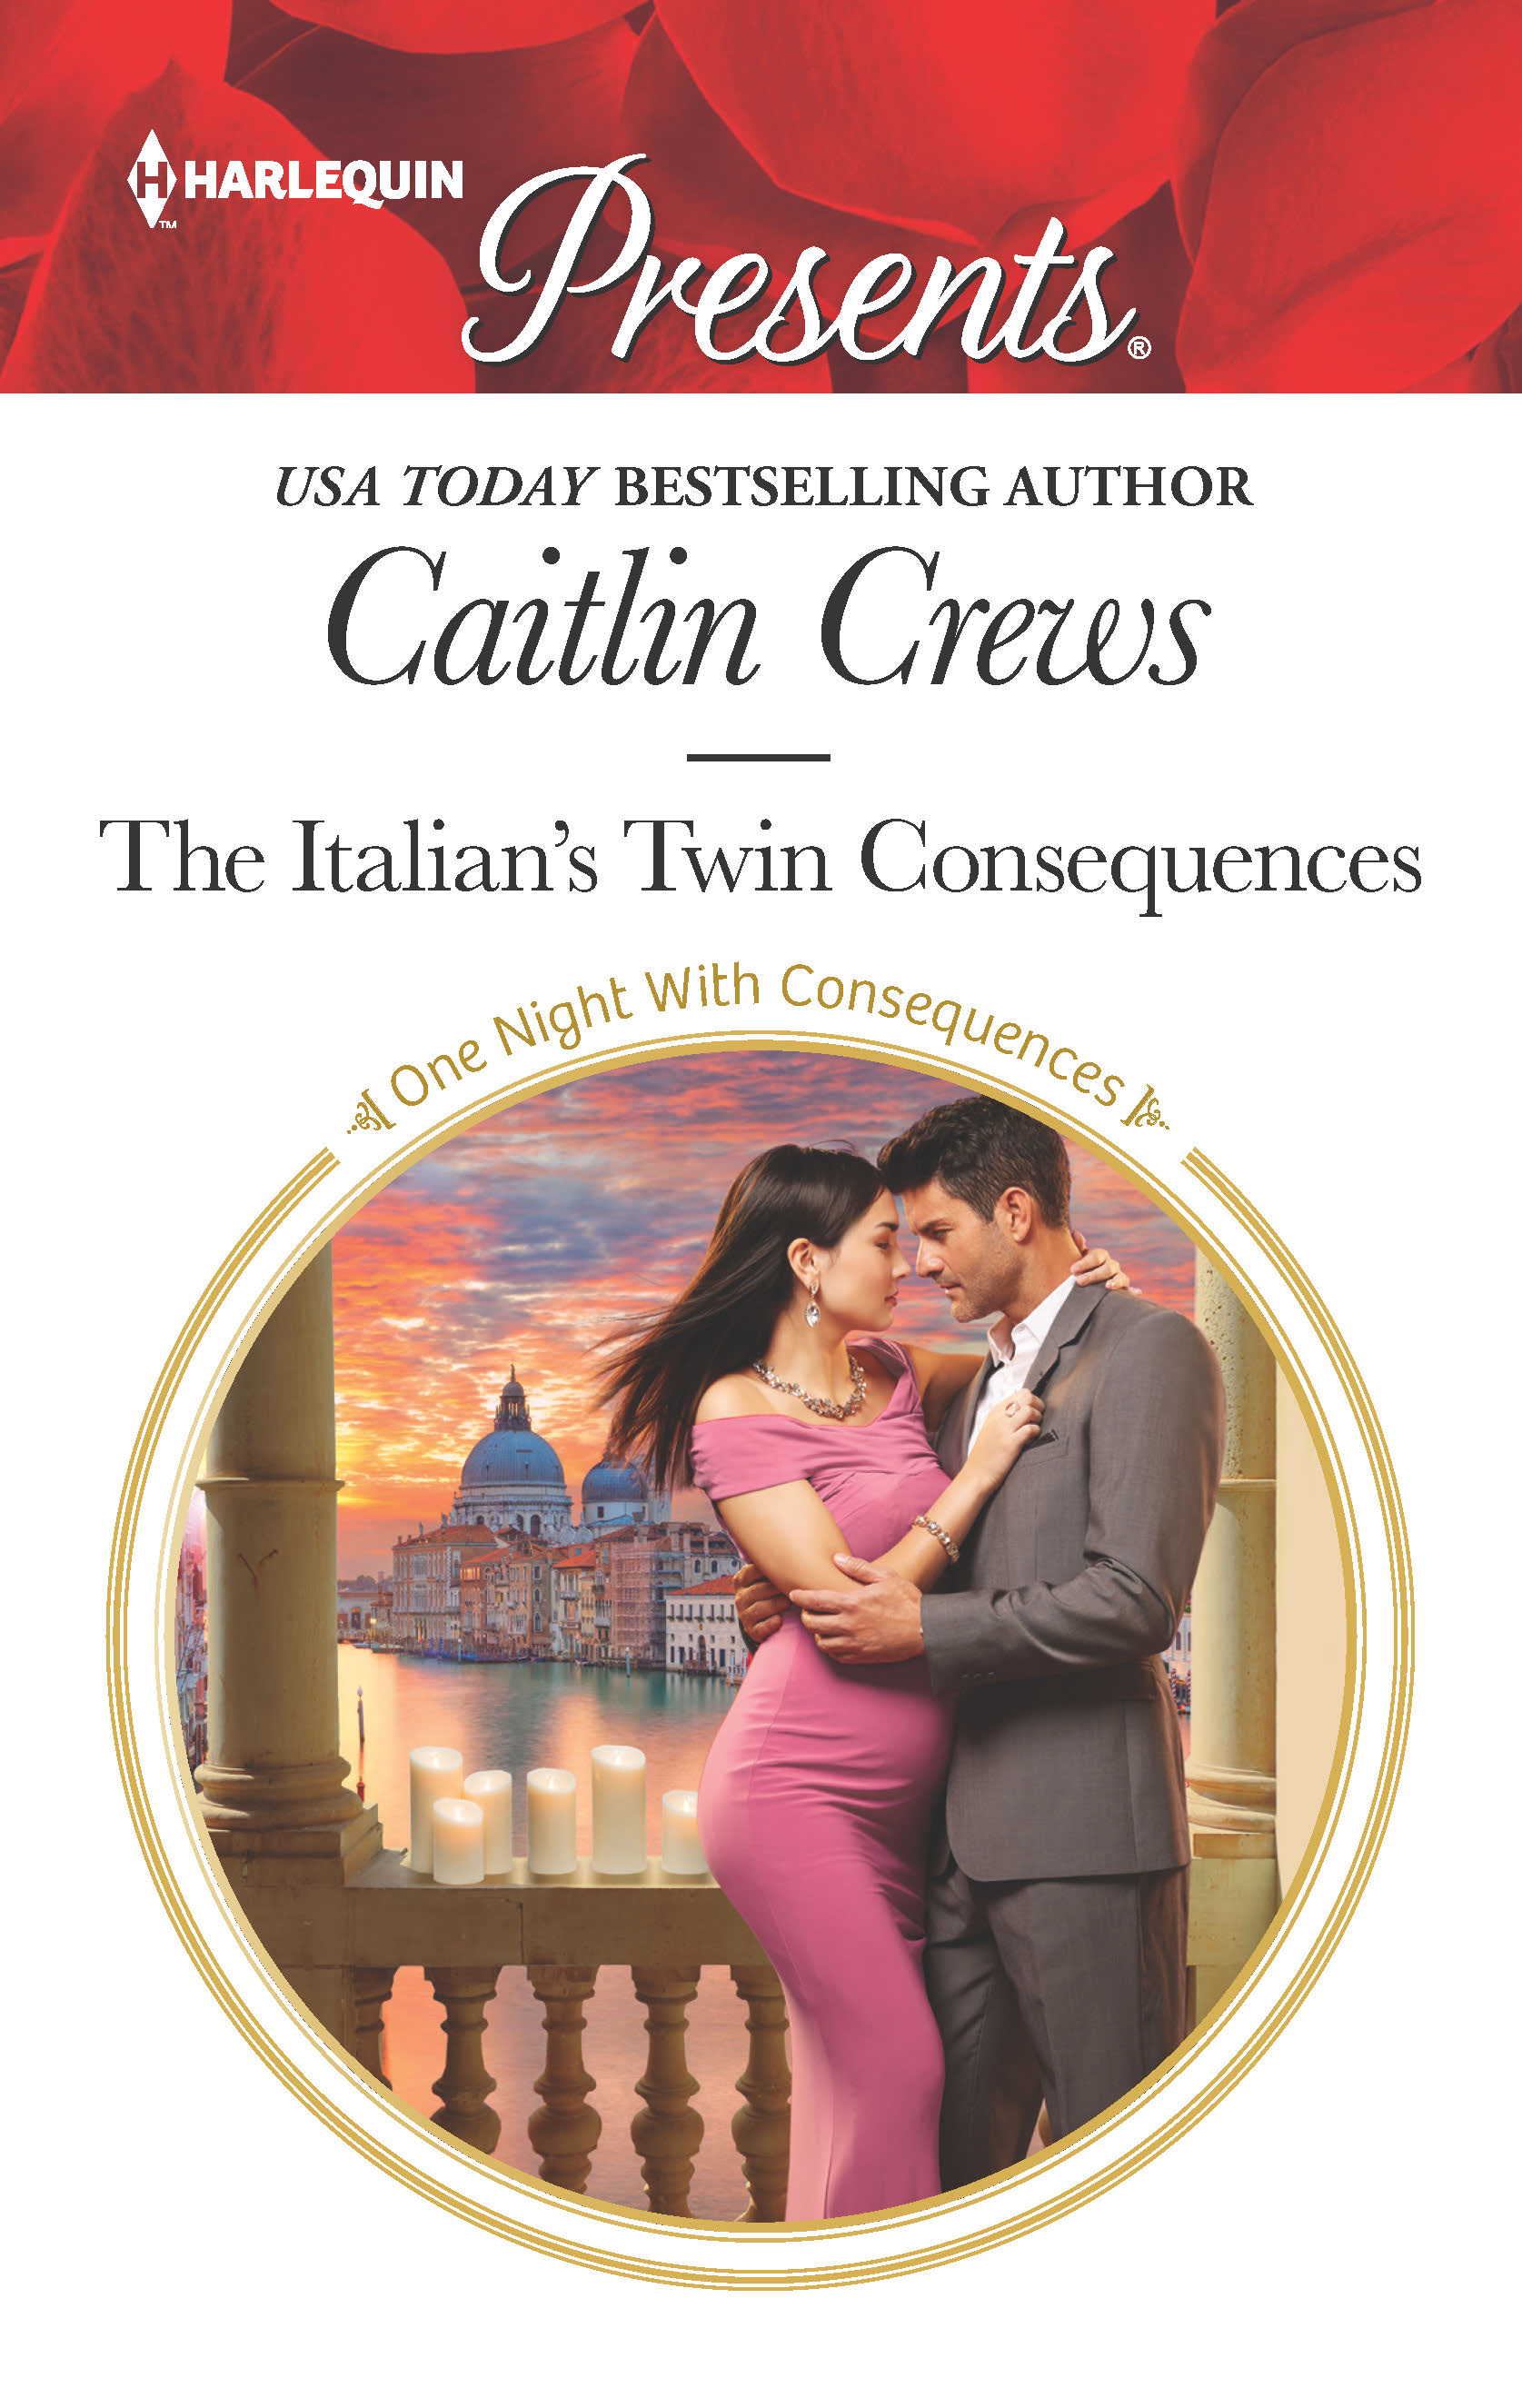 The Italian's Twin Consequences by Caitlin Crews